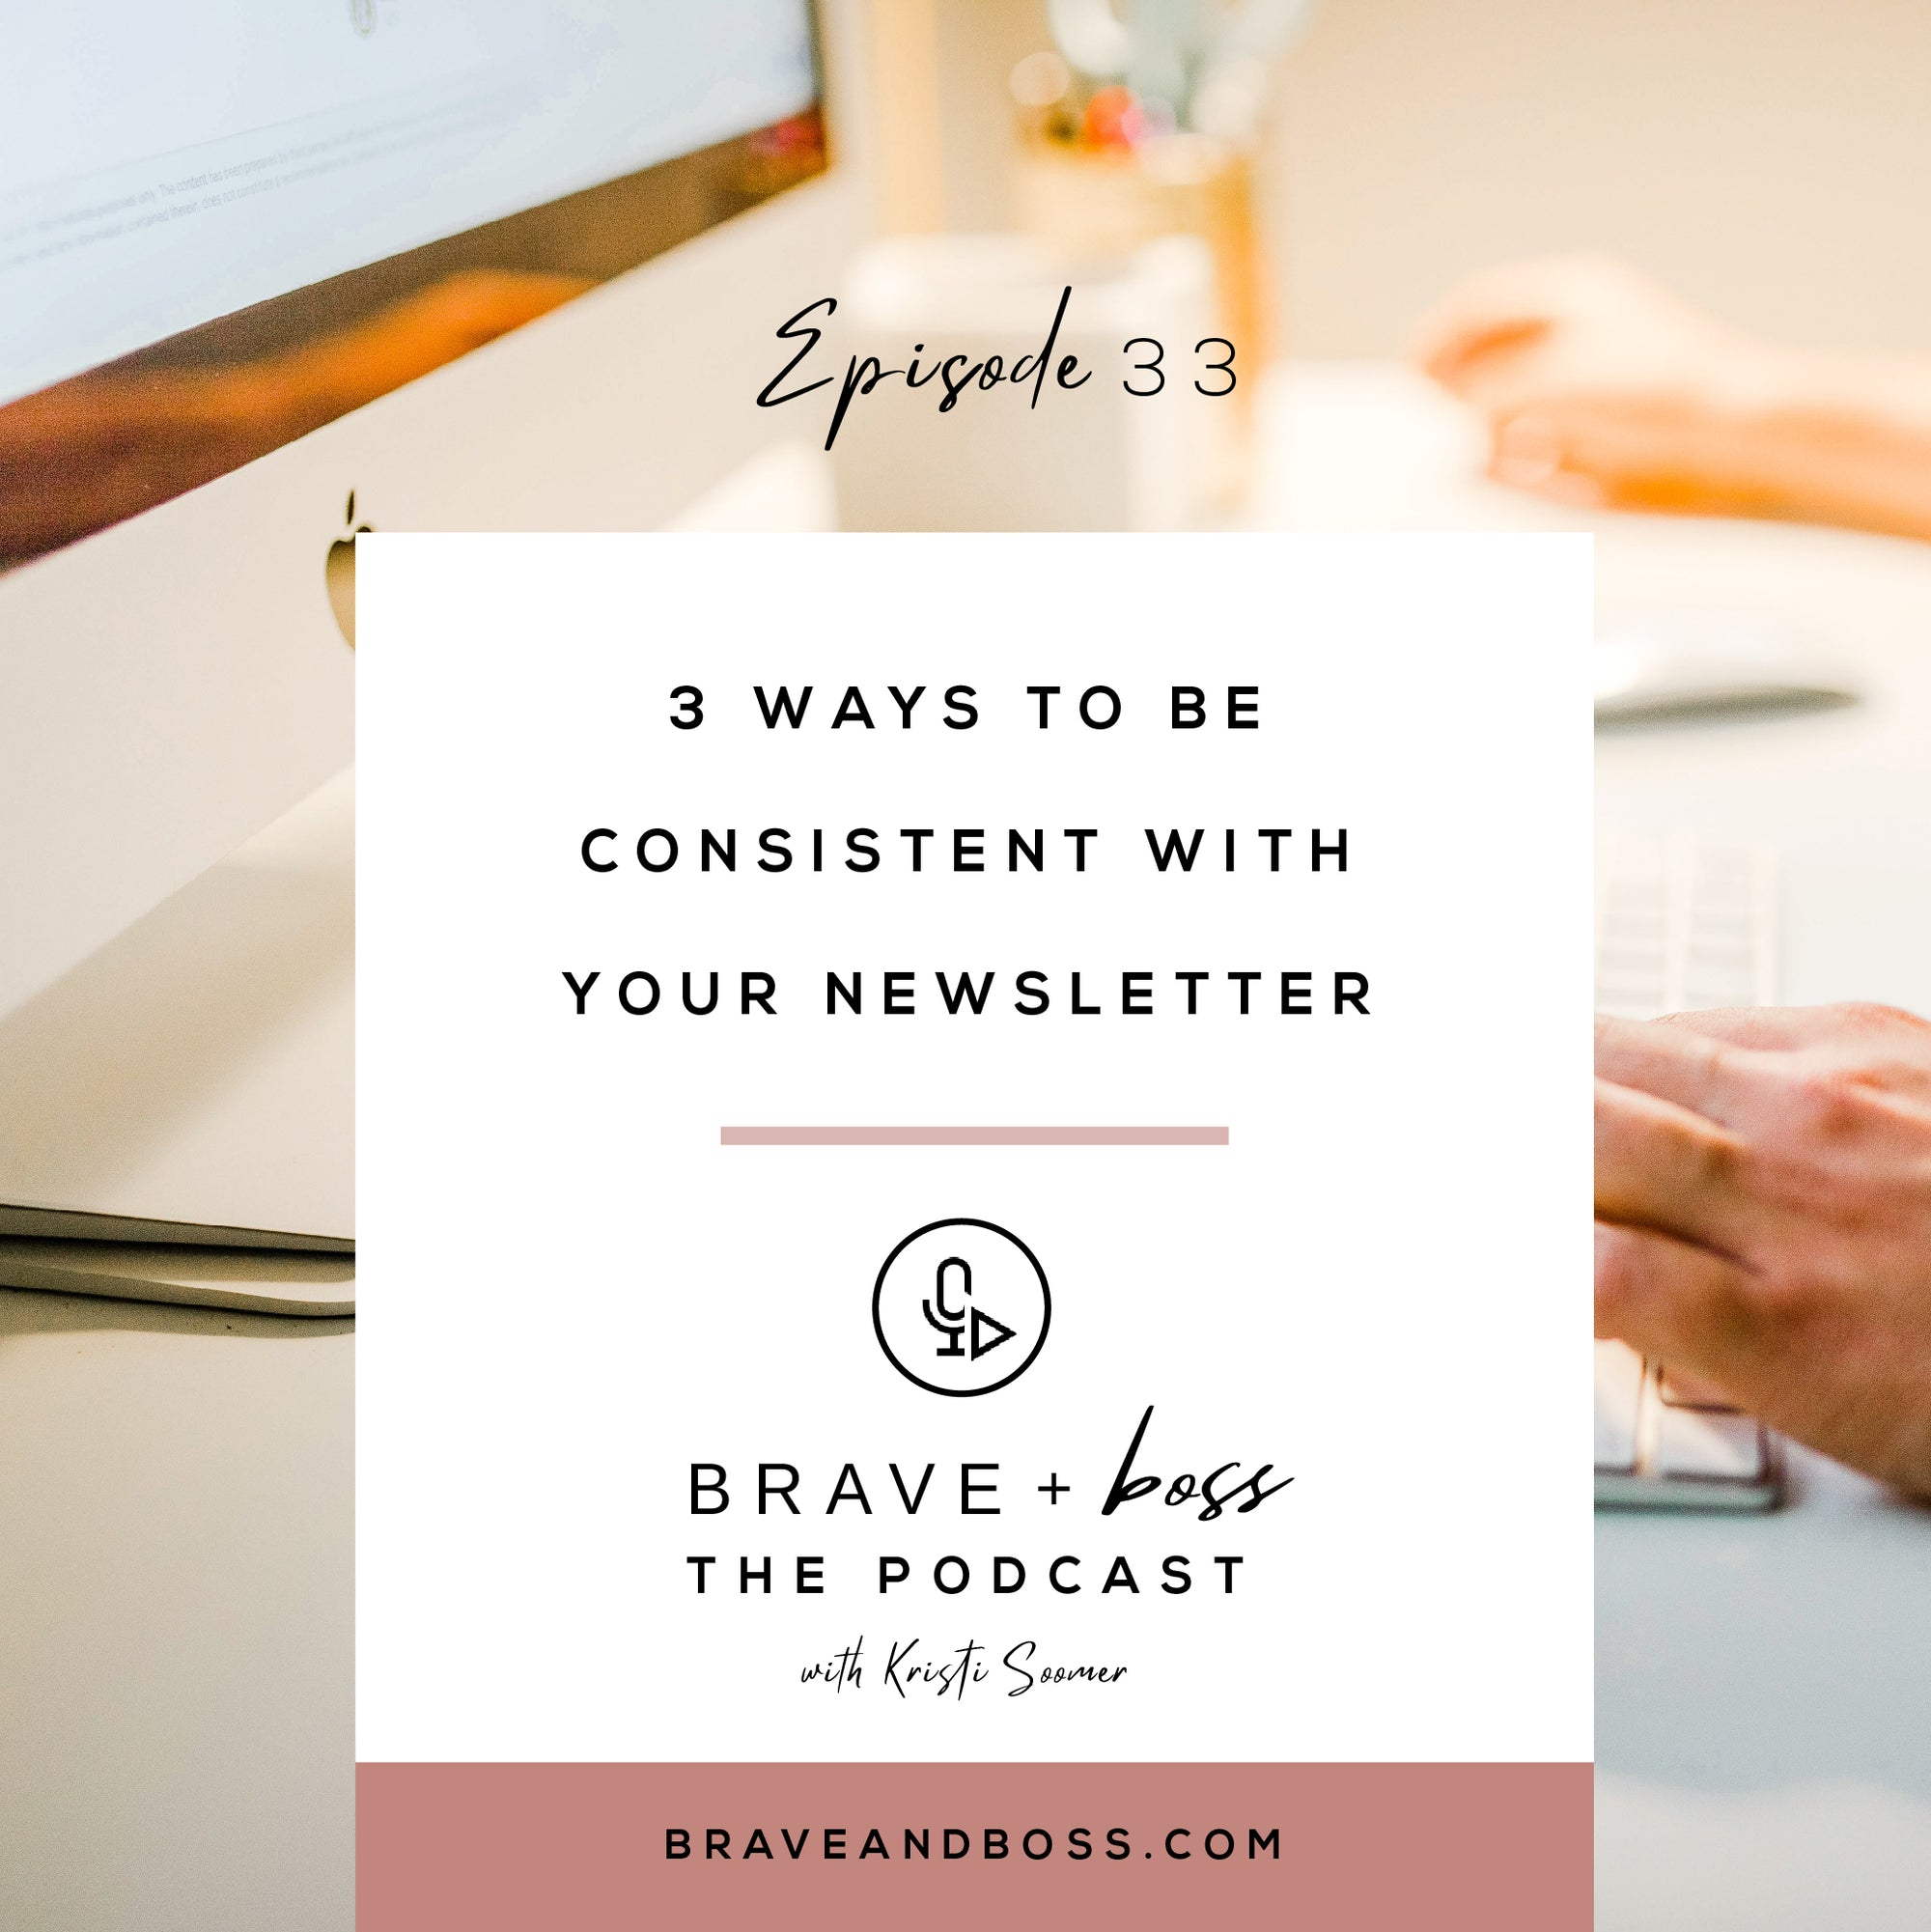 3 Ways to be Consistent with your Newsletter